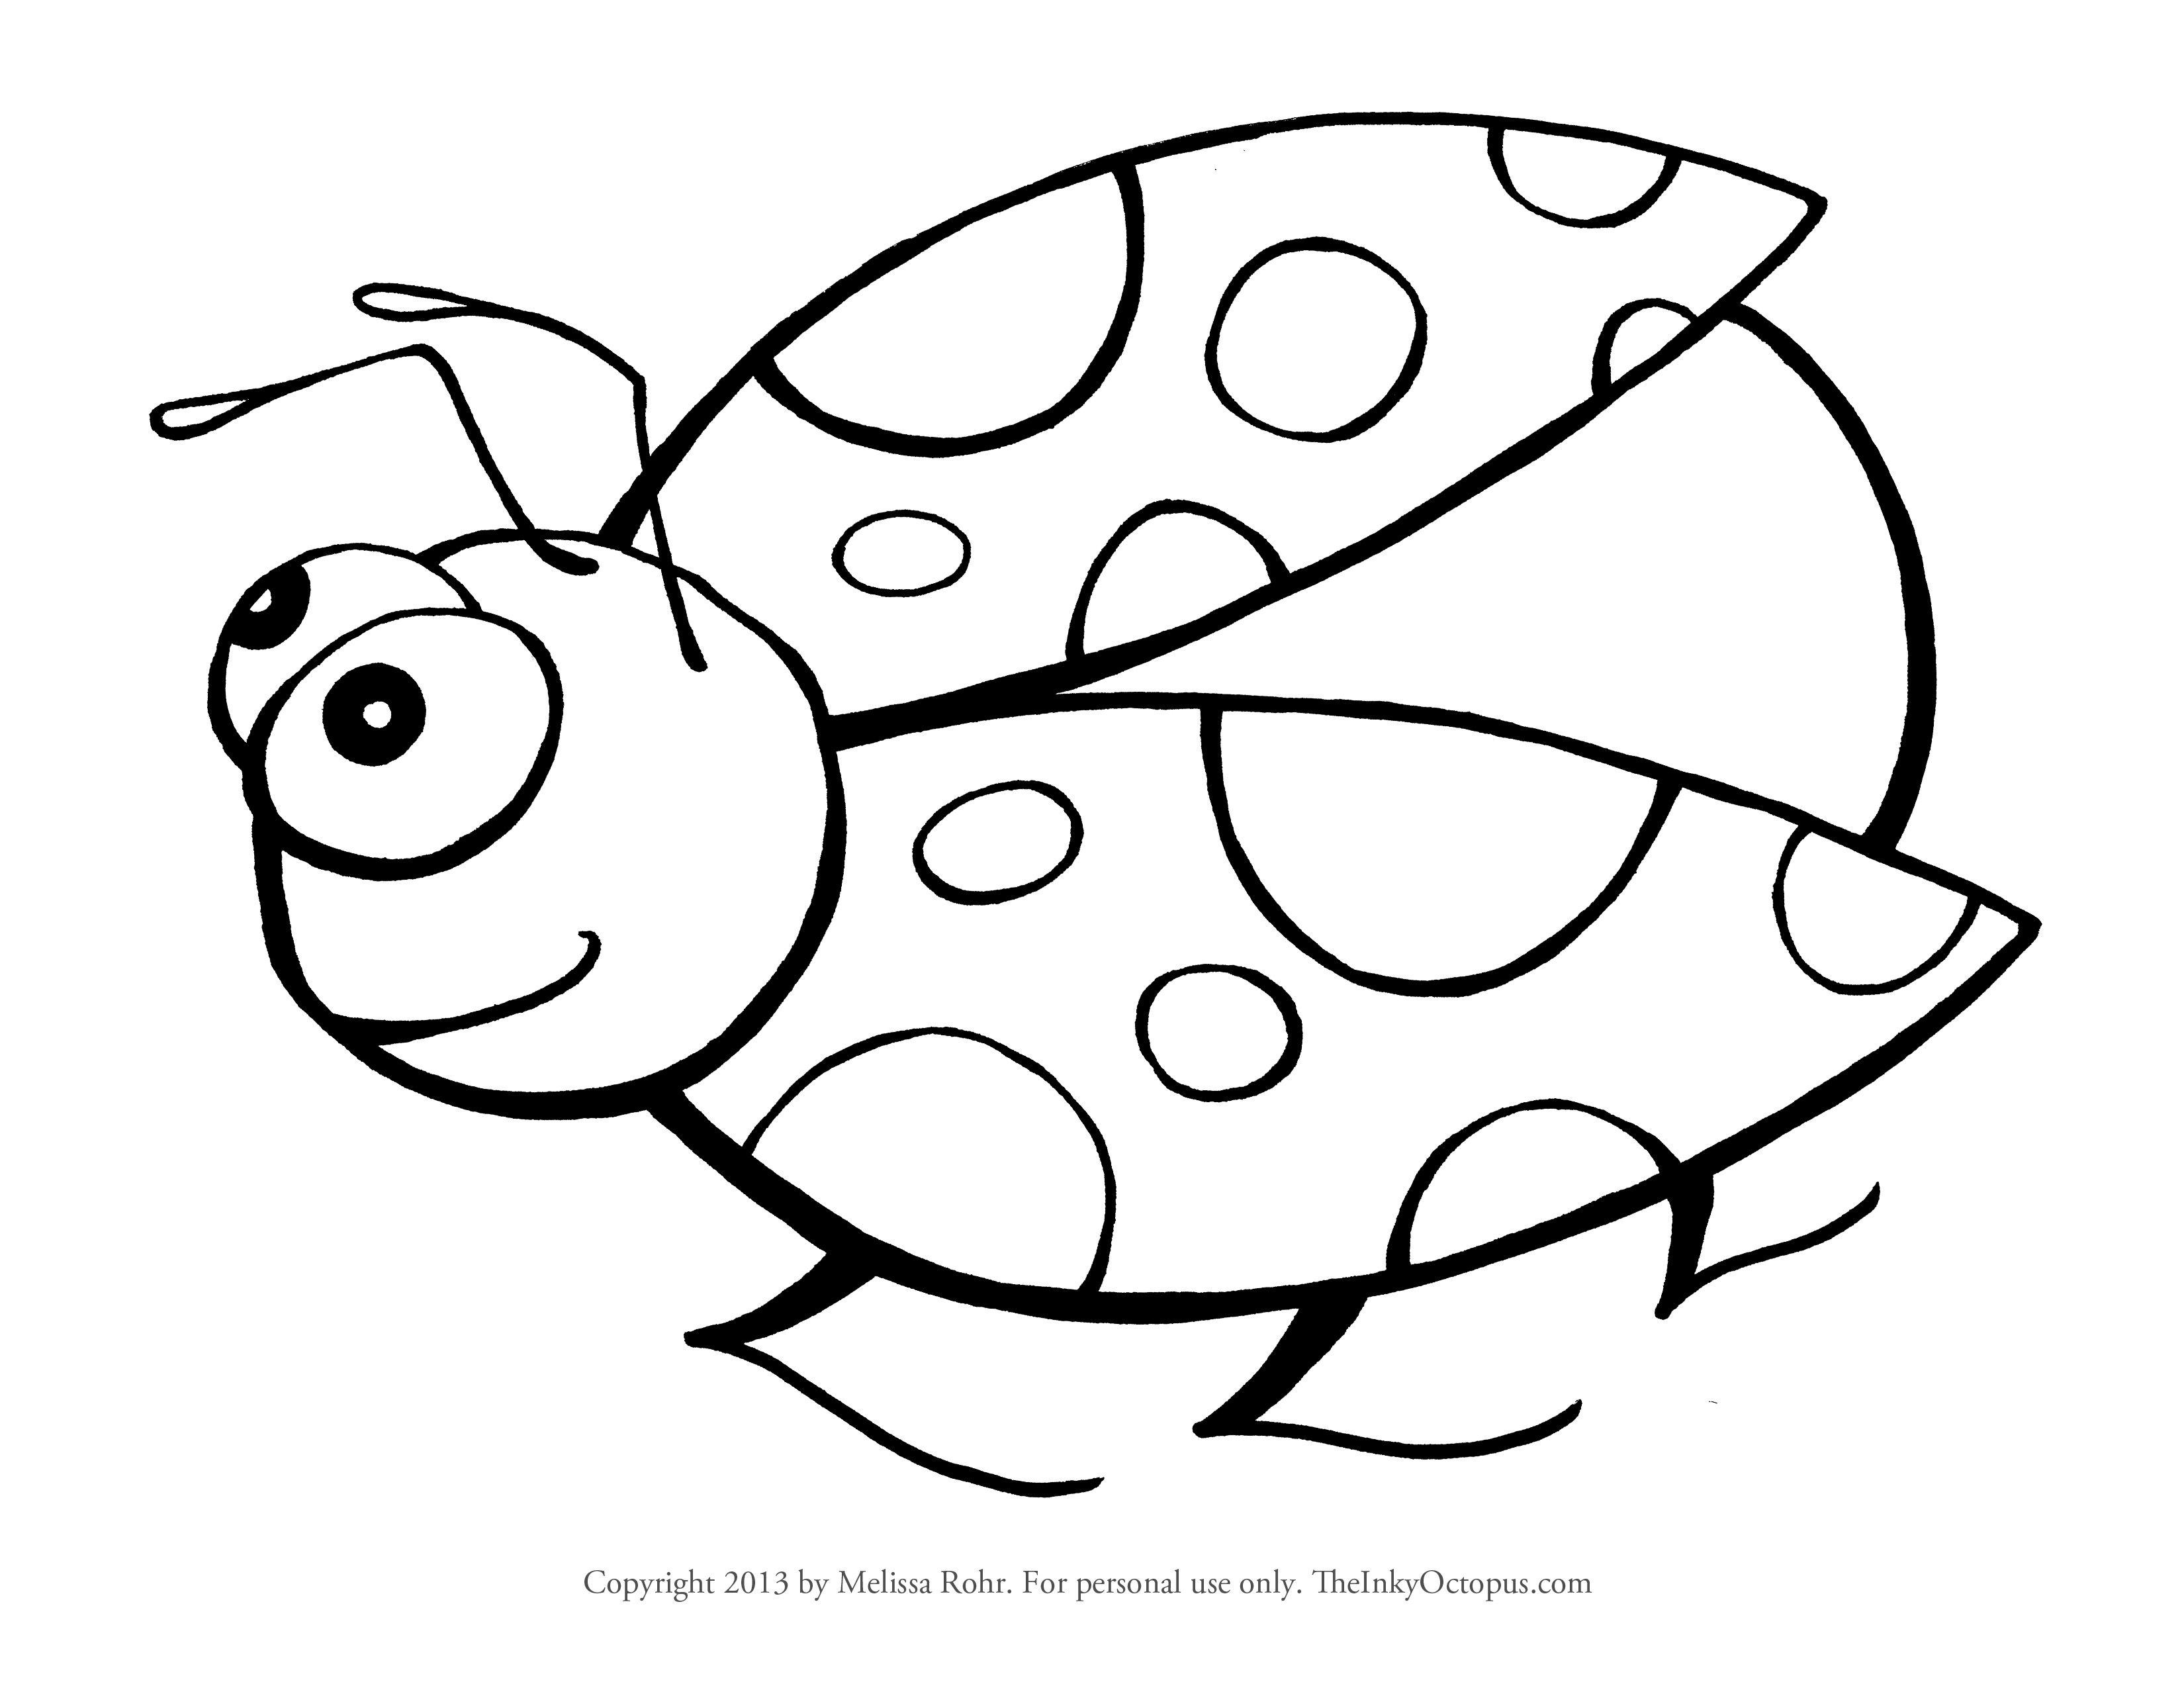 coloring pages bugs free printable bug coloring pages for kids pages coloring bugs